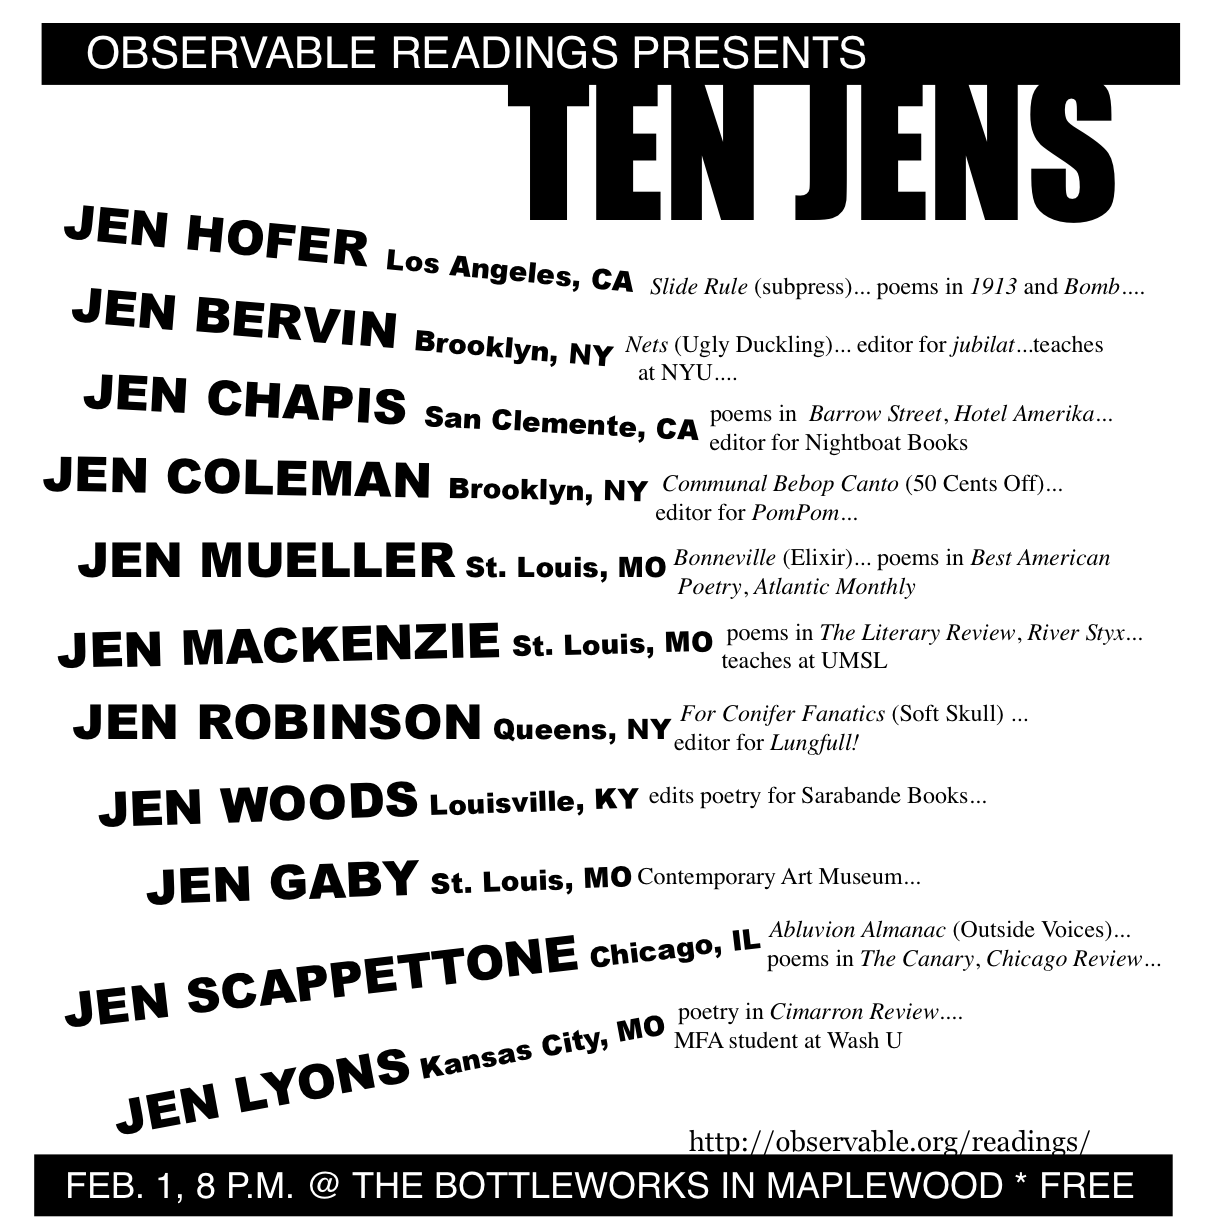 OBSERVABLE READING Maplewood Missouri February 1, 2007: Ten Jens - Hofer, Bervin, Chapis, Robinson, MacKenzie, Coleman, Woods, Scappettone, Gaby, Lyons, and Mueller<br /> <br />Jen Hofer's recent publications include Sin puertas visibles: An Anthology of Contemporary Poetry by Mexican Women (University of Pittsburgh Press, 2003) and slide rule (subpress, 2002). Her work can be found in recent issues of 1913, Bomb, Bombay Gin and Primary Writing.<br /> <br />Jen Bervin is the author of A Non-Breaking Space (uglyducklingpresse.org), Nets (Ugly Duckling Presse 2004) and Under What Is Not Under (Potes & Poets 2001),. Bervin is an editor of the literary journal, jubilat, and teaches at Pratt Institute and New York University.<br /> <br />Jen Chapis is author of the chapbook The Beekeeper's Departure (Backwards City 2007). Recipient of the Florida Review Editor's Prize and GSU Review Poetry Prize, she has published poems in The Iowa Review, McSweeney's, Quarterly West, Best New Poets, etc. Jen is an Editor with Nightboat Books (nightboat.org).<br /> <br />Jen Coleman is a poet in Brooklyn, NY and co-editor of PomPom magazine (pompompress.com). She's also co-author of the chapbook Communal Bebop Canto with CE Putnam and Allison Cobb.<br /> <br />Jen MacKenzie teaches literature and writing at UM St. Louis. Her work has appeared in a number of publications, among them The Literary Review, Feminist Studies, The Christian Science Monitor, Unitarian-Universalist Poets, and, locally, River Styx, Delmar, and Sou'wester.<br /> <br />Jen Robinson is the author of For Conifer Fanatics (Soft Skull, 1996) and the chapbooks What Solitary Ocean and Late Night Clanging (with artist Elizabeth Zechel). She serves as puzzle editor for Lungfull! magazine and makes her home in Queens, New York.<br /> <br />Jen Woods is a poet and short fiction writer from Louisville, Kentucky. She serves as an editorial and marketing assistant for Sarabande Books, an independent literary press (sarabandebooks.org).<br /> <br />Jen Gaby studied Creative Writing at University of Indiana and is a fierce advocate for the literary arts in St. Louis. During daylight hours, she serves as the public relations manager for the Contemporary Art Museum.<br /> <br />Jen Scappettone's Abluvion Almanac will be out imminently from Outside Voices. Poems, translations from Italian, and prose have appeared lately in Bay Poetics, P-Queue, The Canary, The Brooklyn Rail, Chicago Review, and other places. She lives in Chicago.<br /> <br />Jen Lyons is from Kansas City and is currently attending the Washington University MFA program; she has had a poem published in Cimarron Review.<br /> <br />Jen Mueller's new collection, Bonneville, comes out this spring from Elixir Books. She teaches poetry and fiction writing at McKendree College.